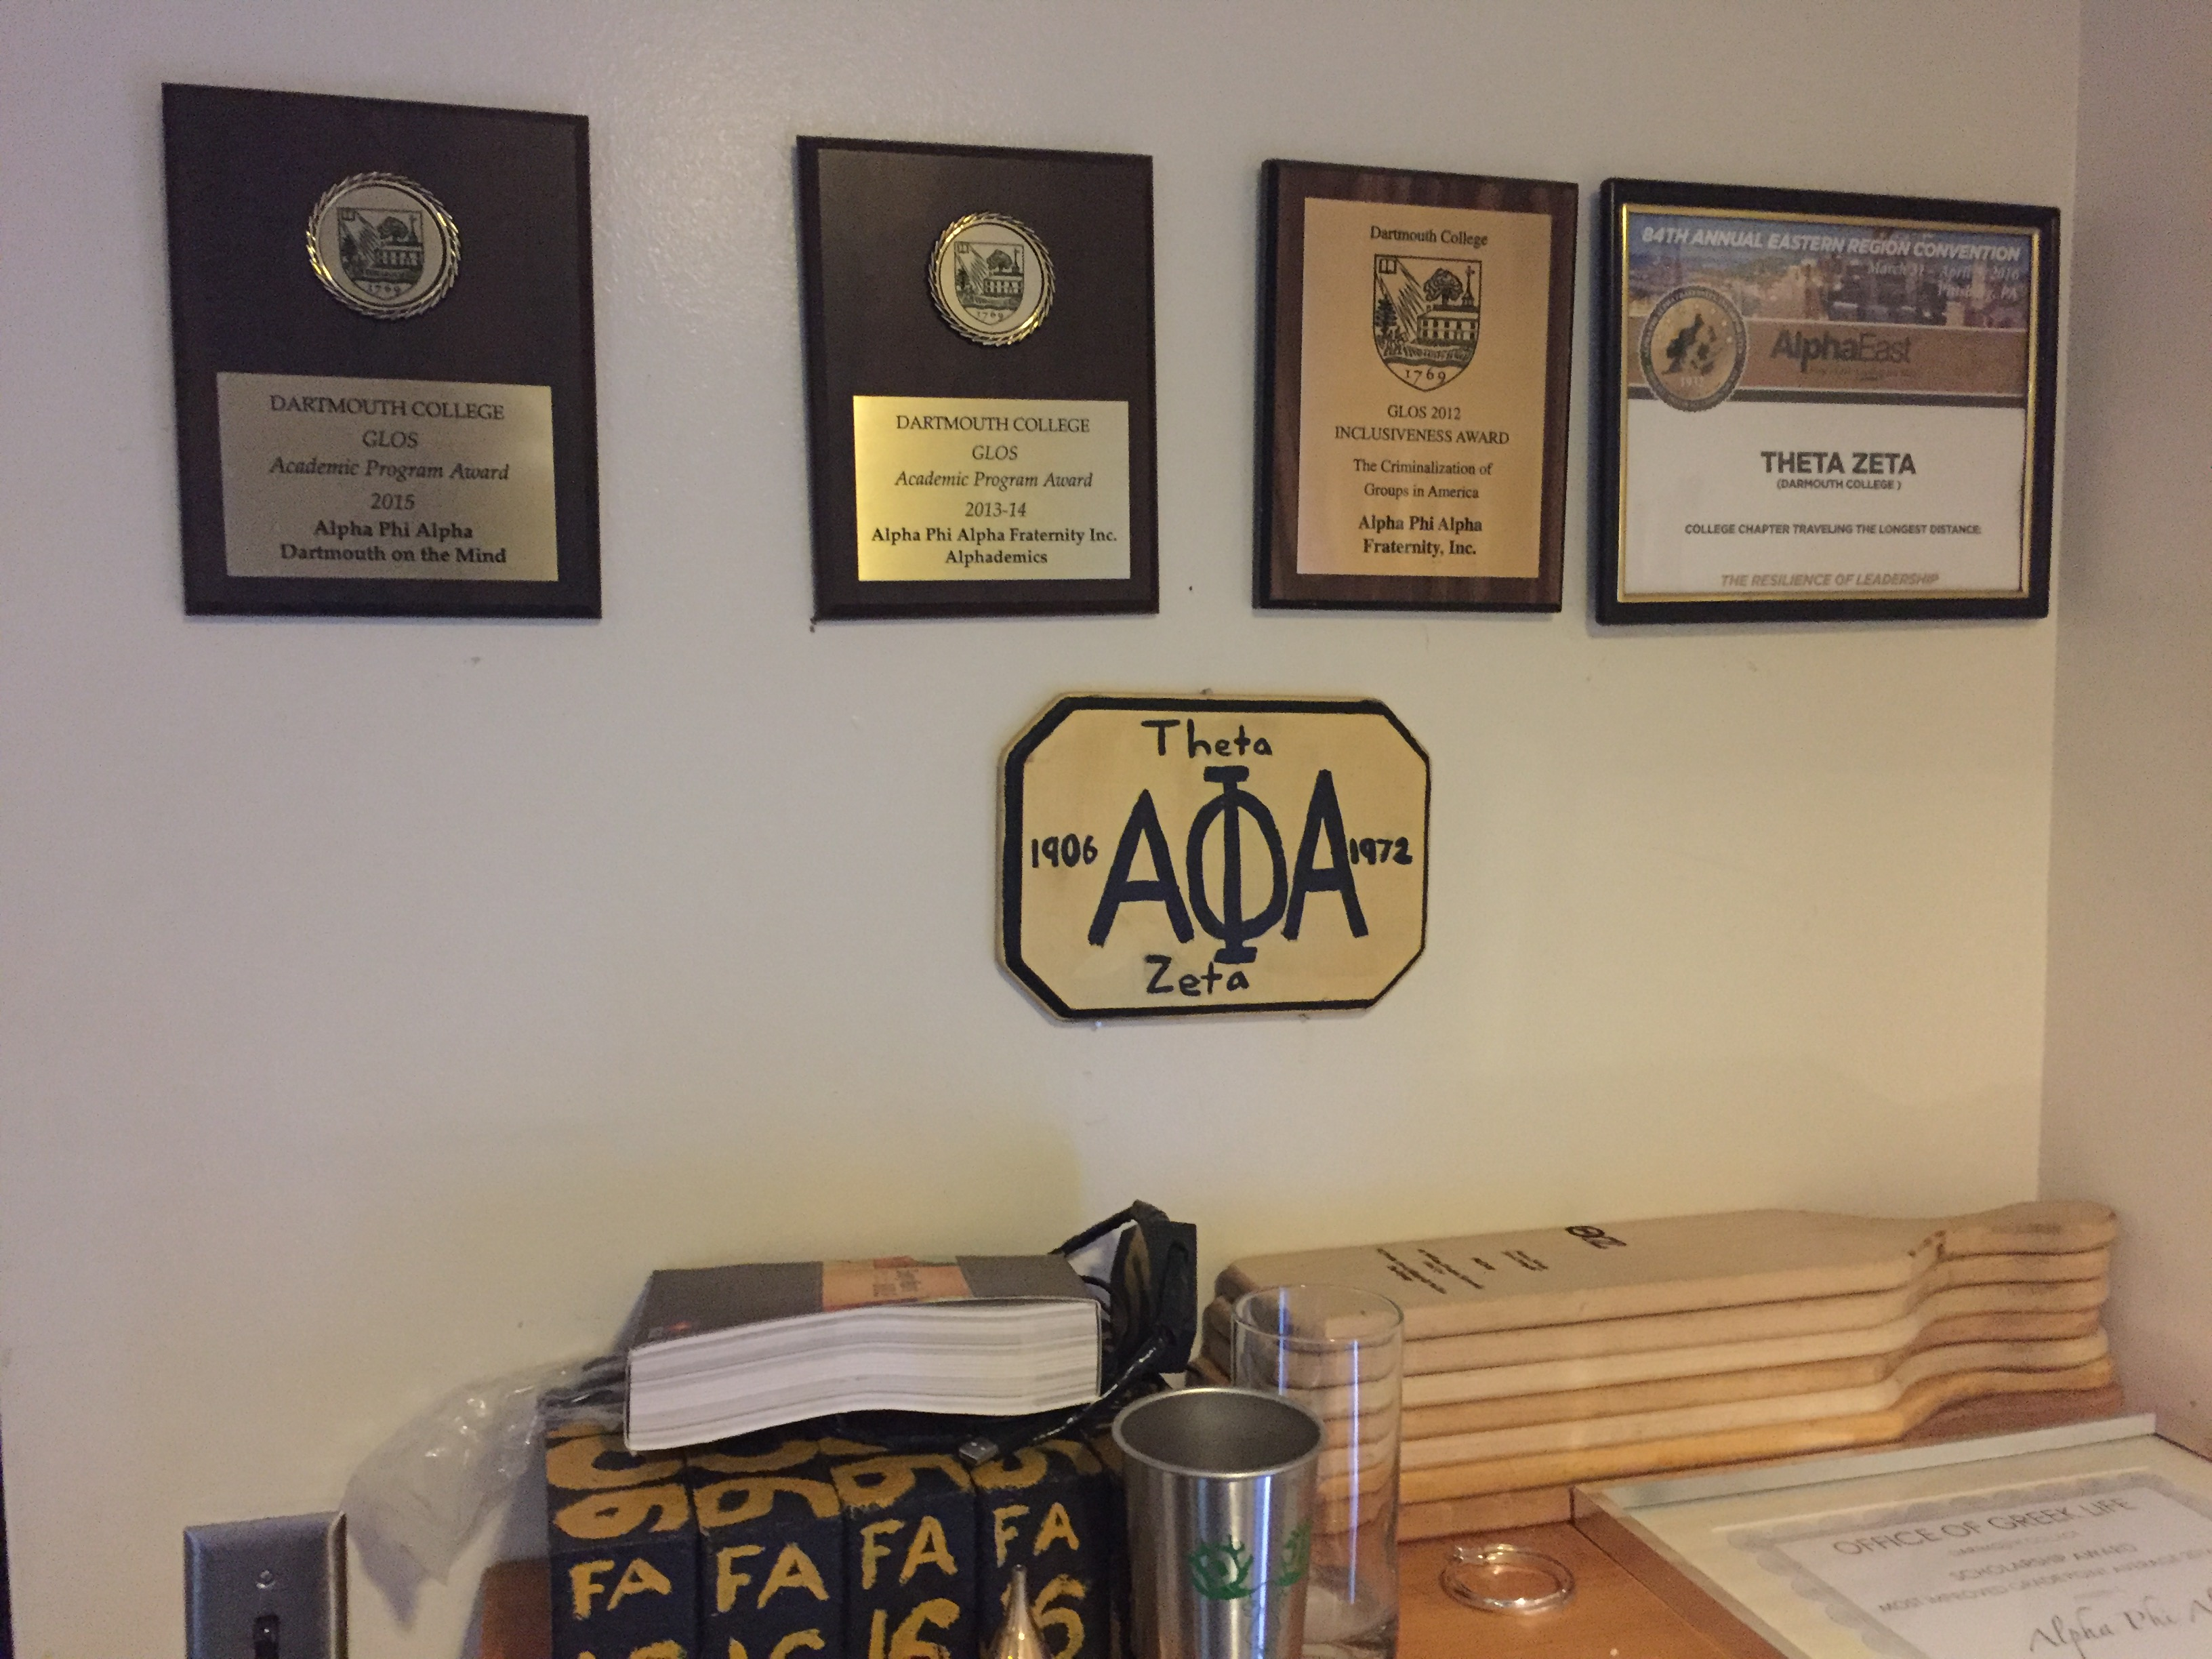 Awards won by Theta Zeta